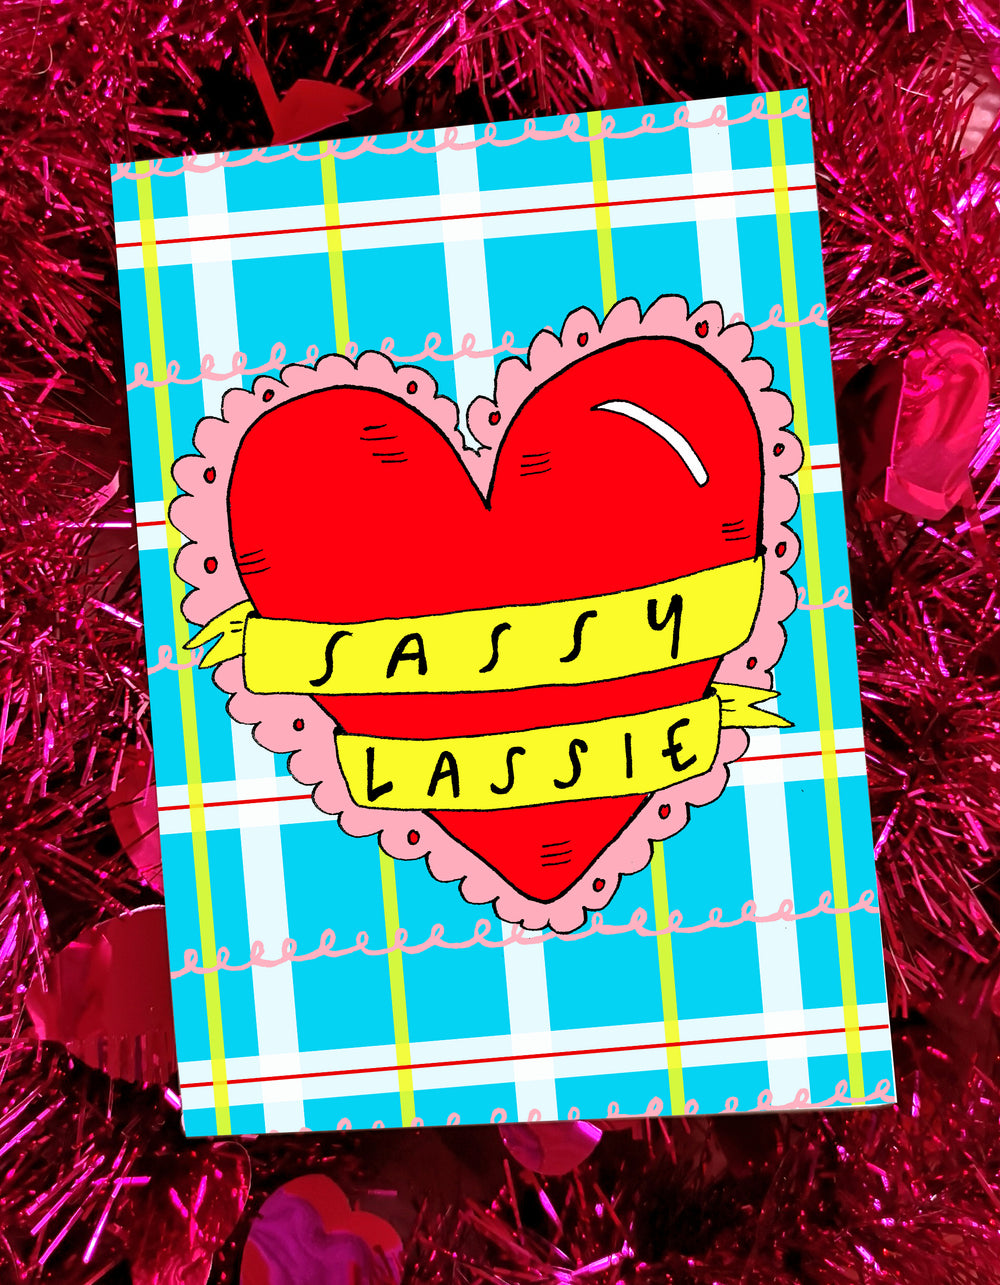 Sassy Lassie! Greetings Card